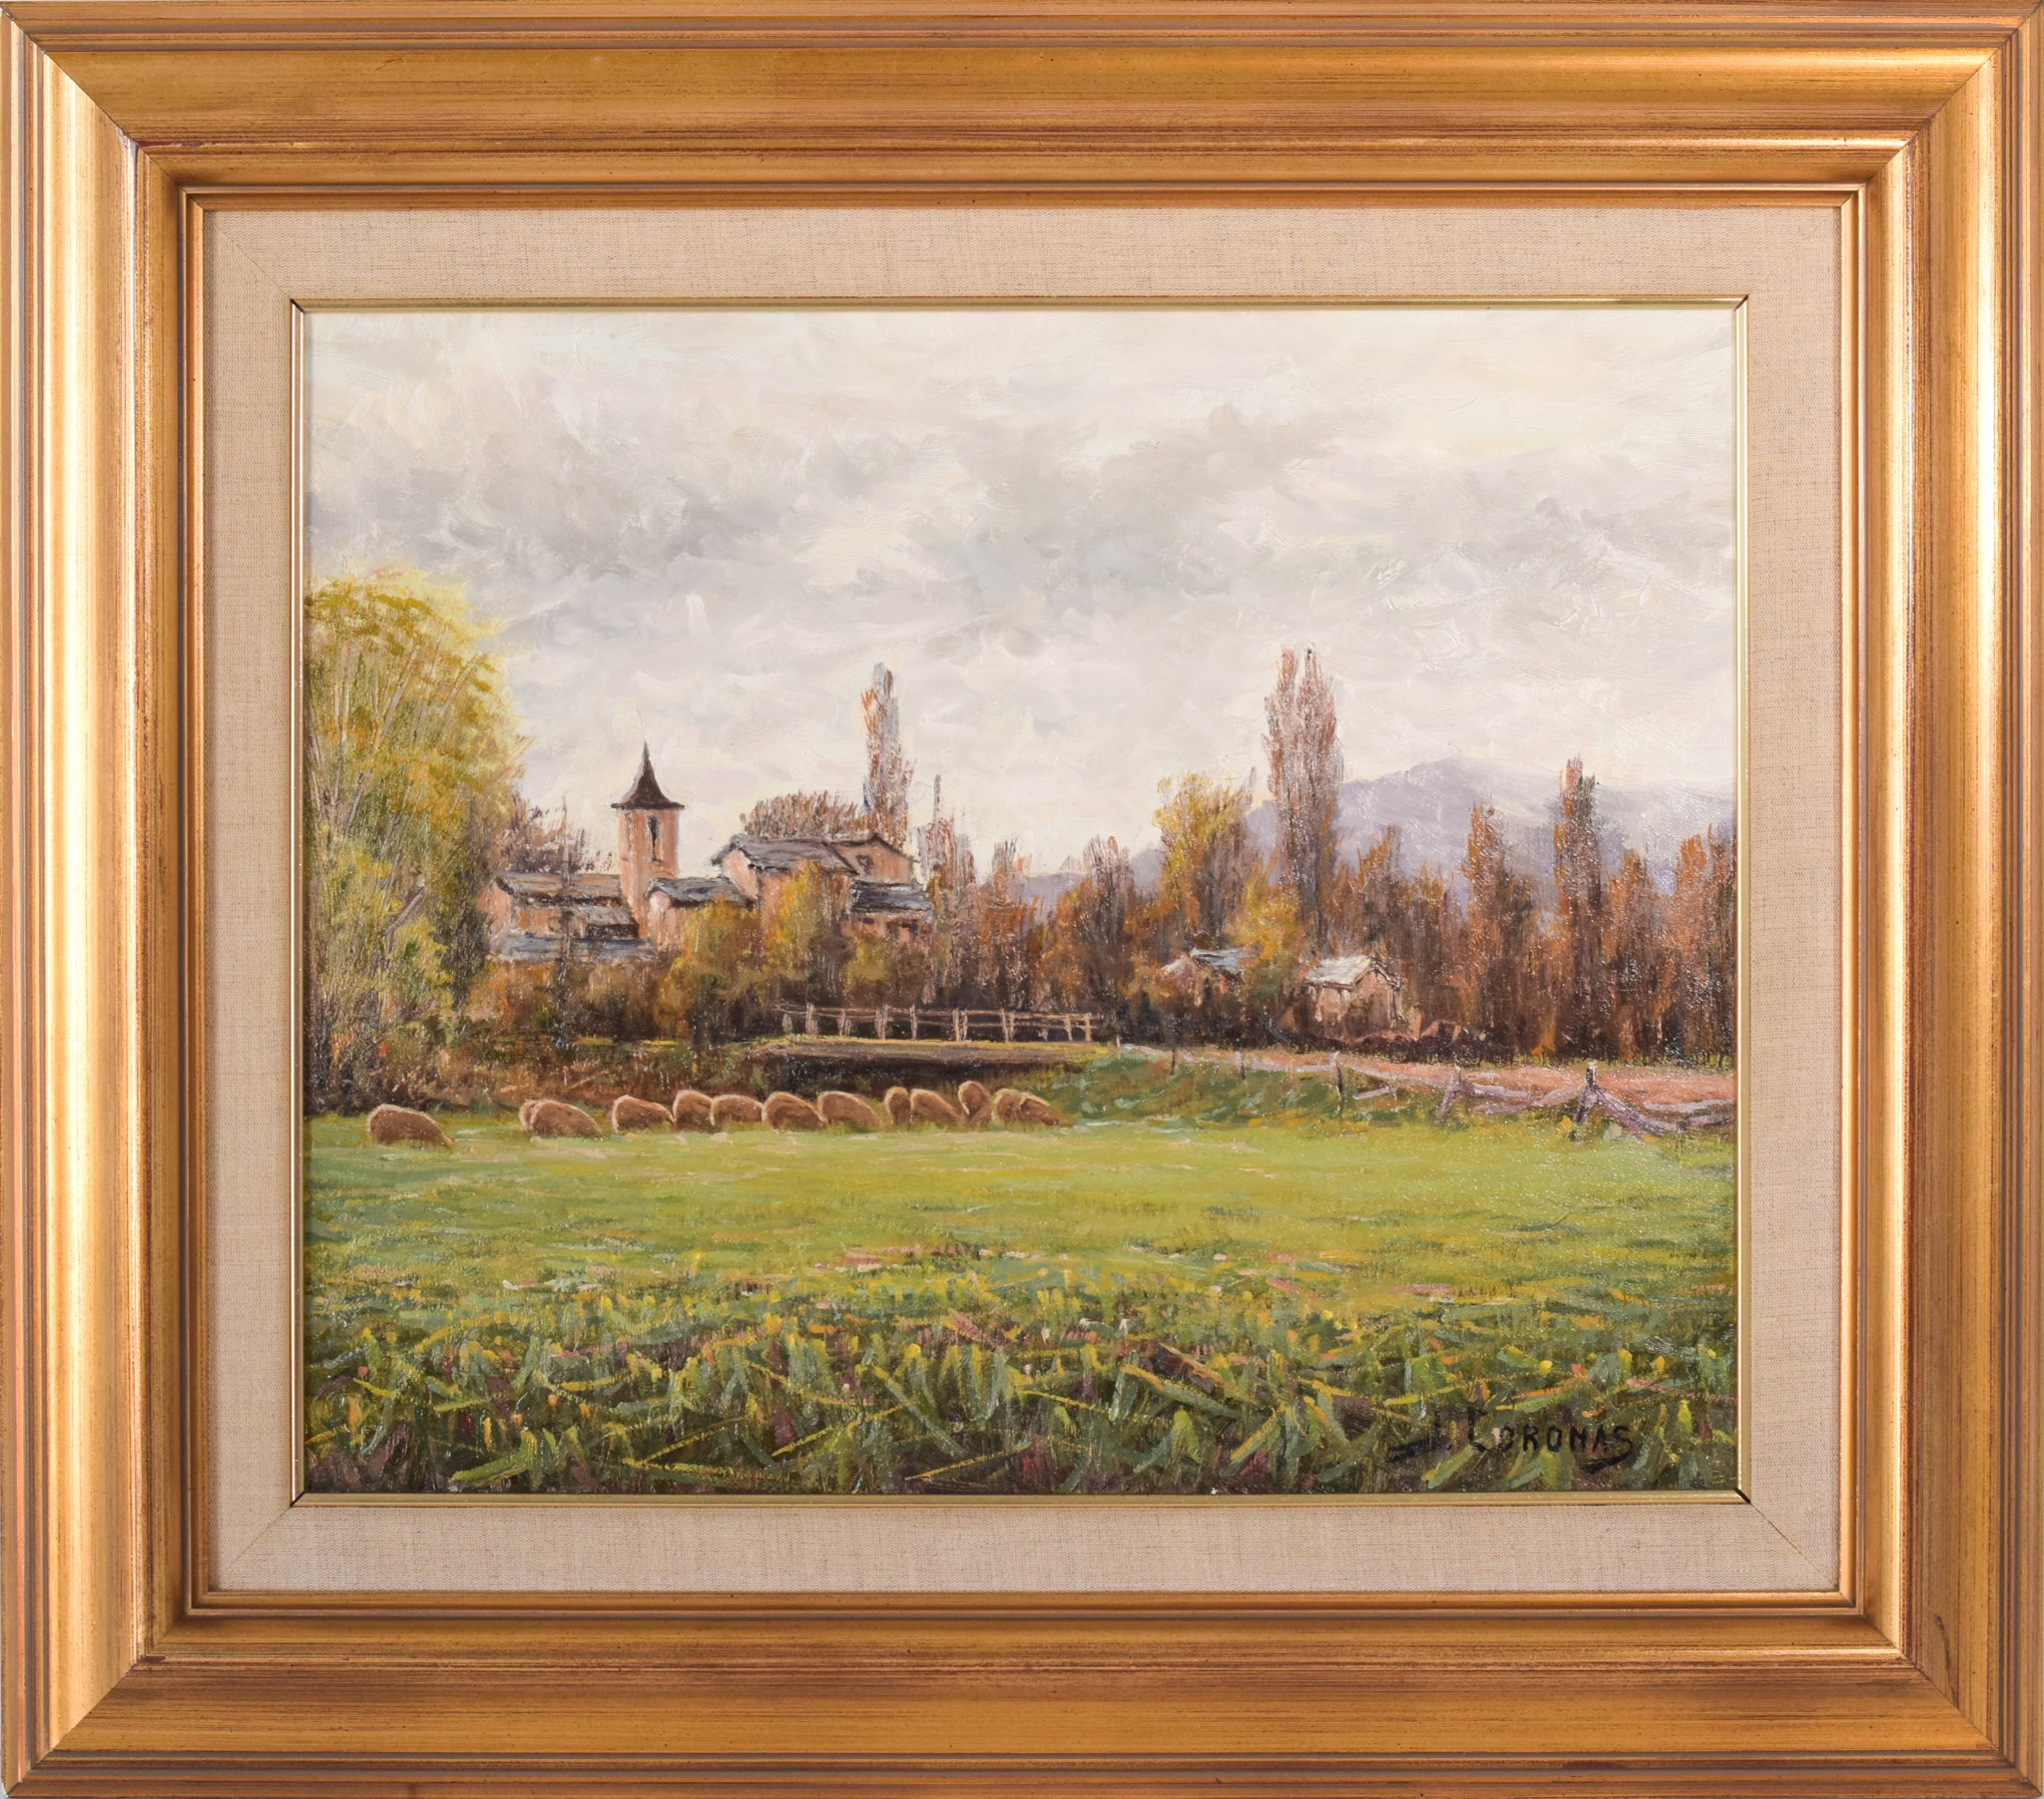 Framed Signed Oil on Canvas of a Landscape with River and Village